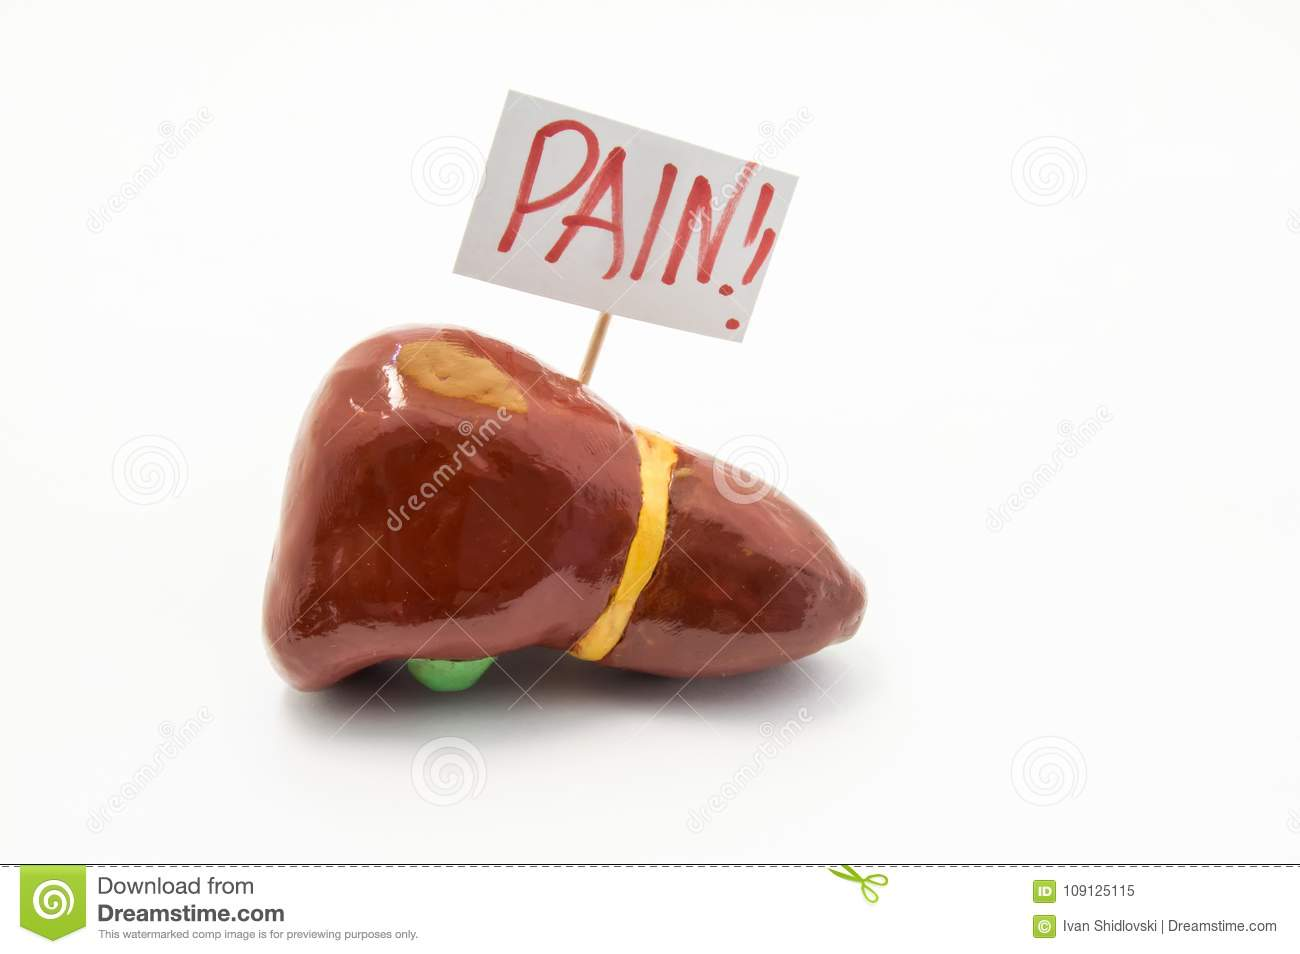 Anatomical model of liver with placard with inscription pain is on white background. Concept photo of pain symptoms and syndromes